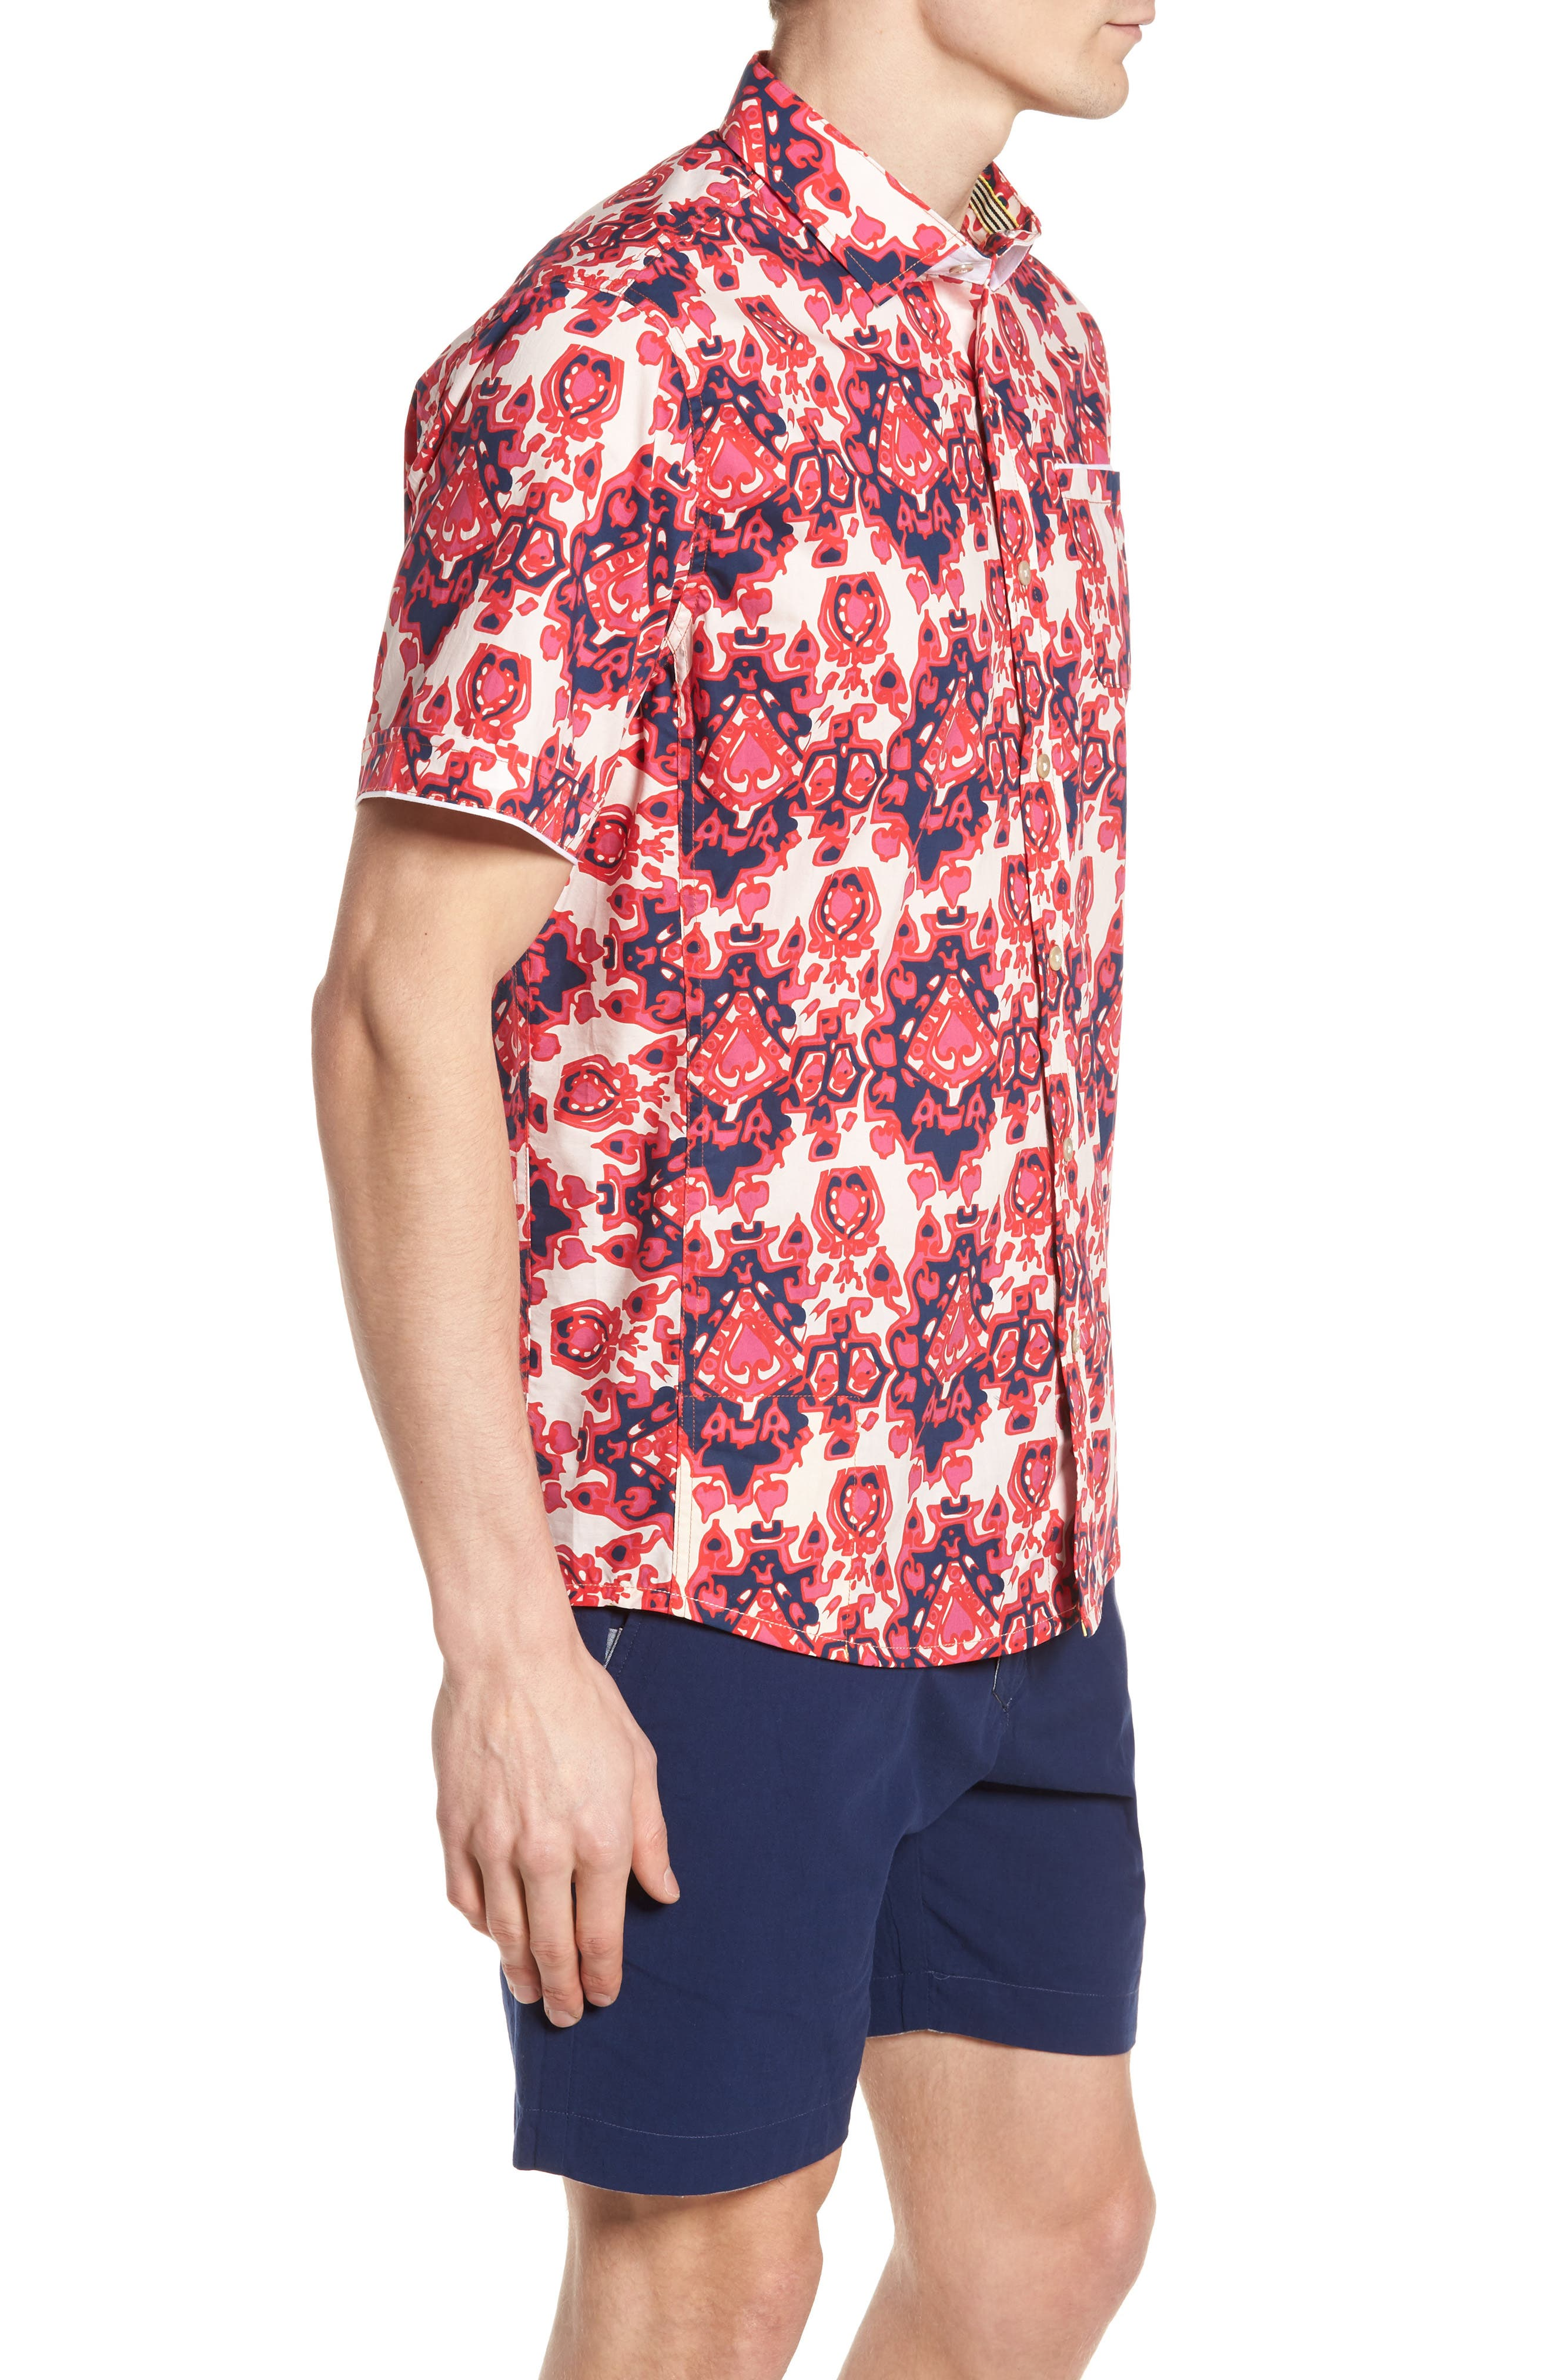 Abstract Culture Woven Shirt,                             Alternate thumbnail 4, color,                             Punch Red